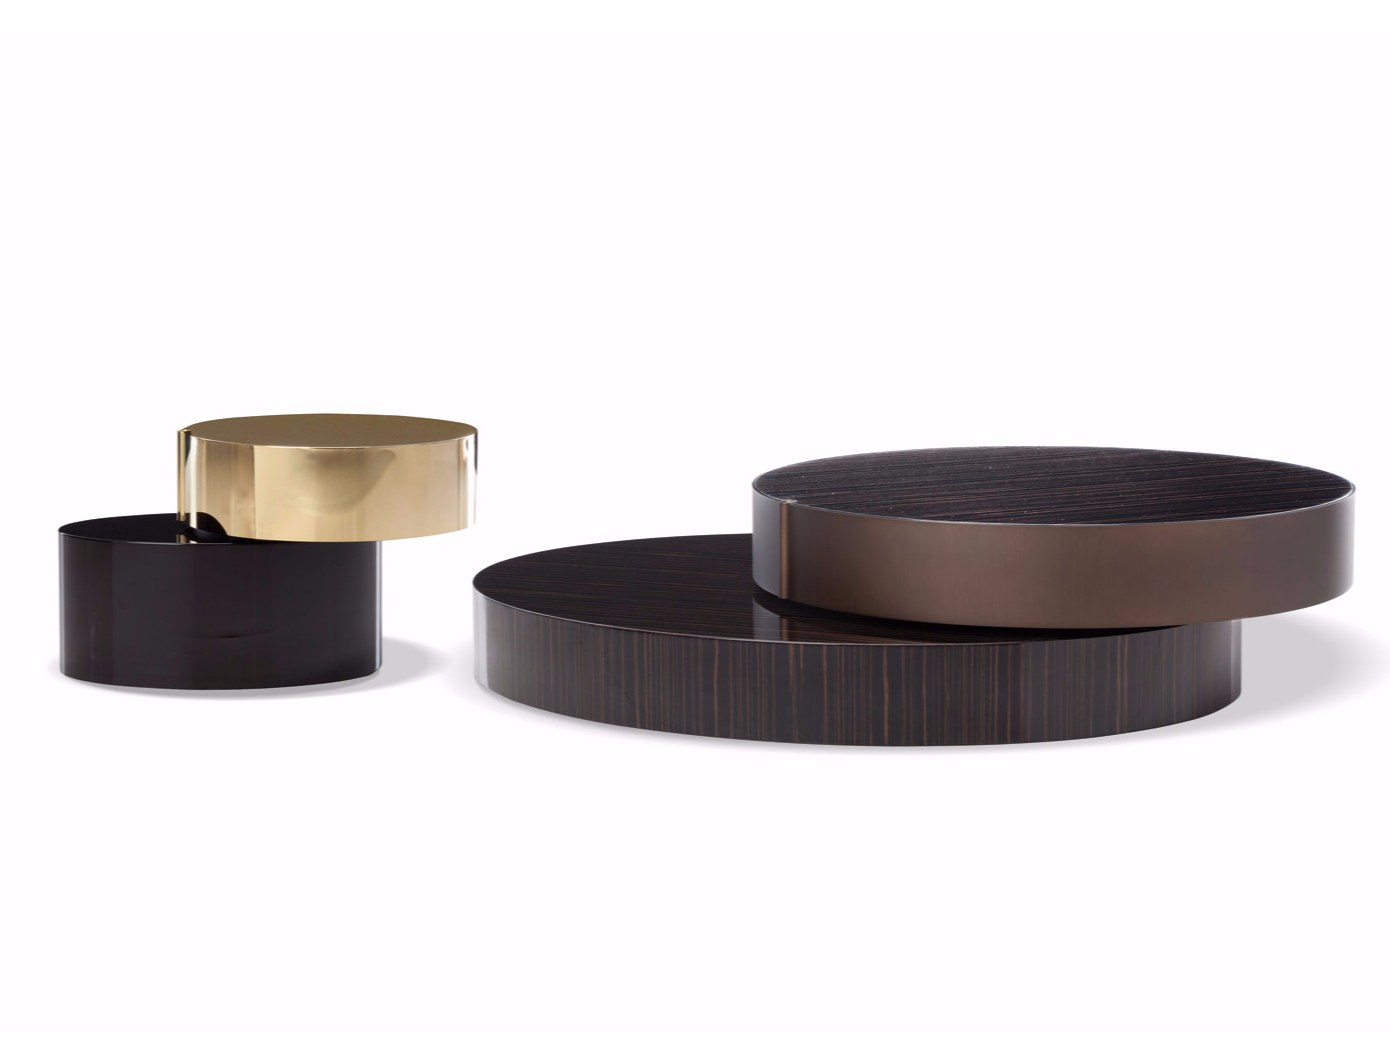 Coffee Table Benson By Minotti Design Rodolfo Dordoni